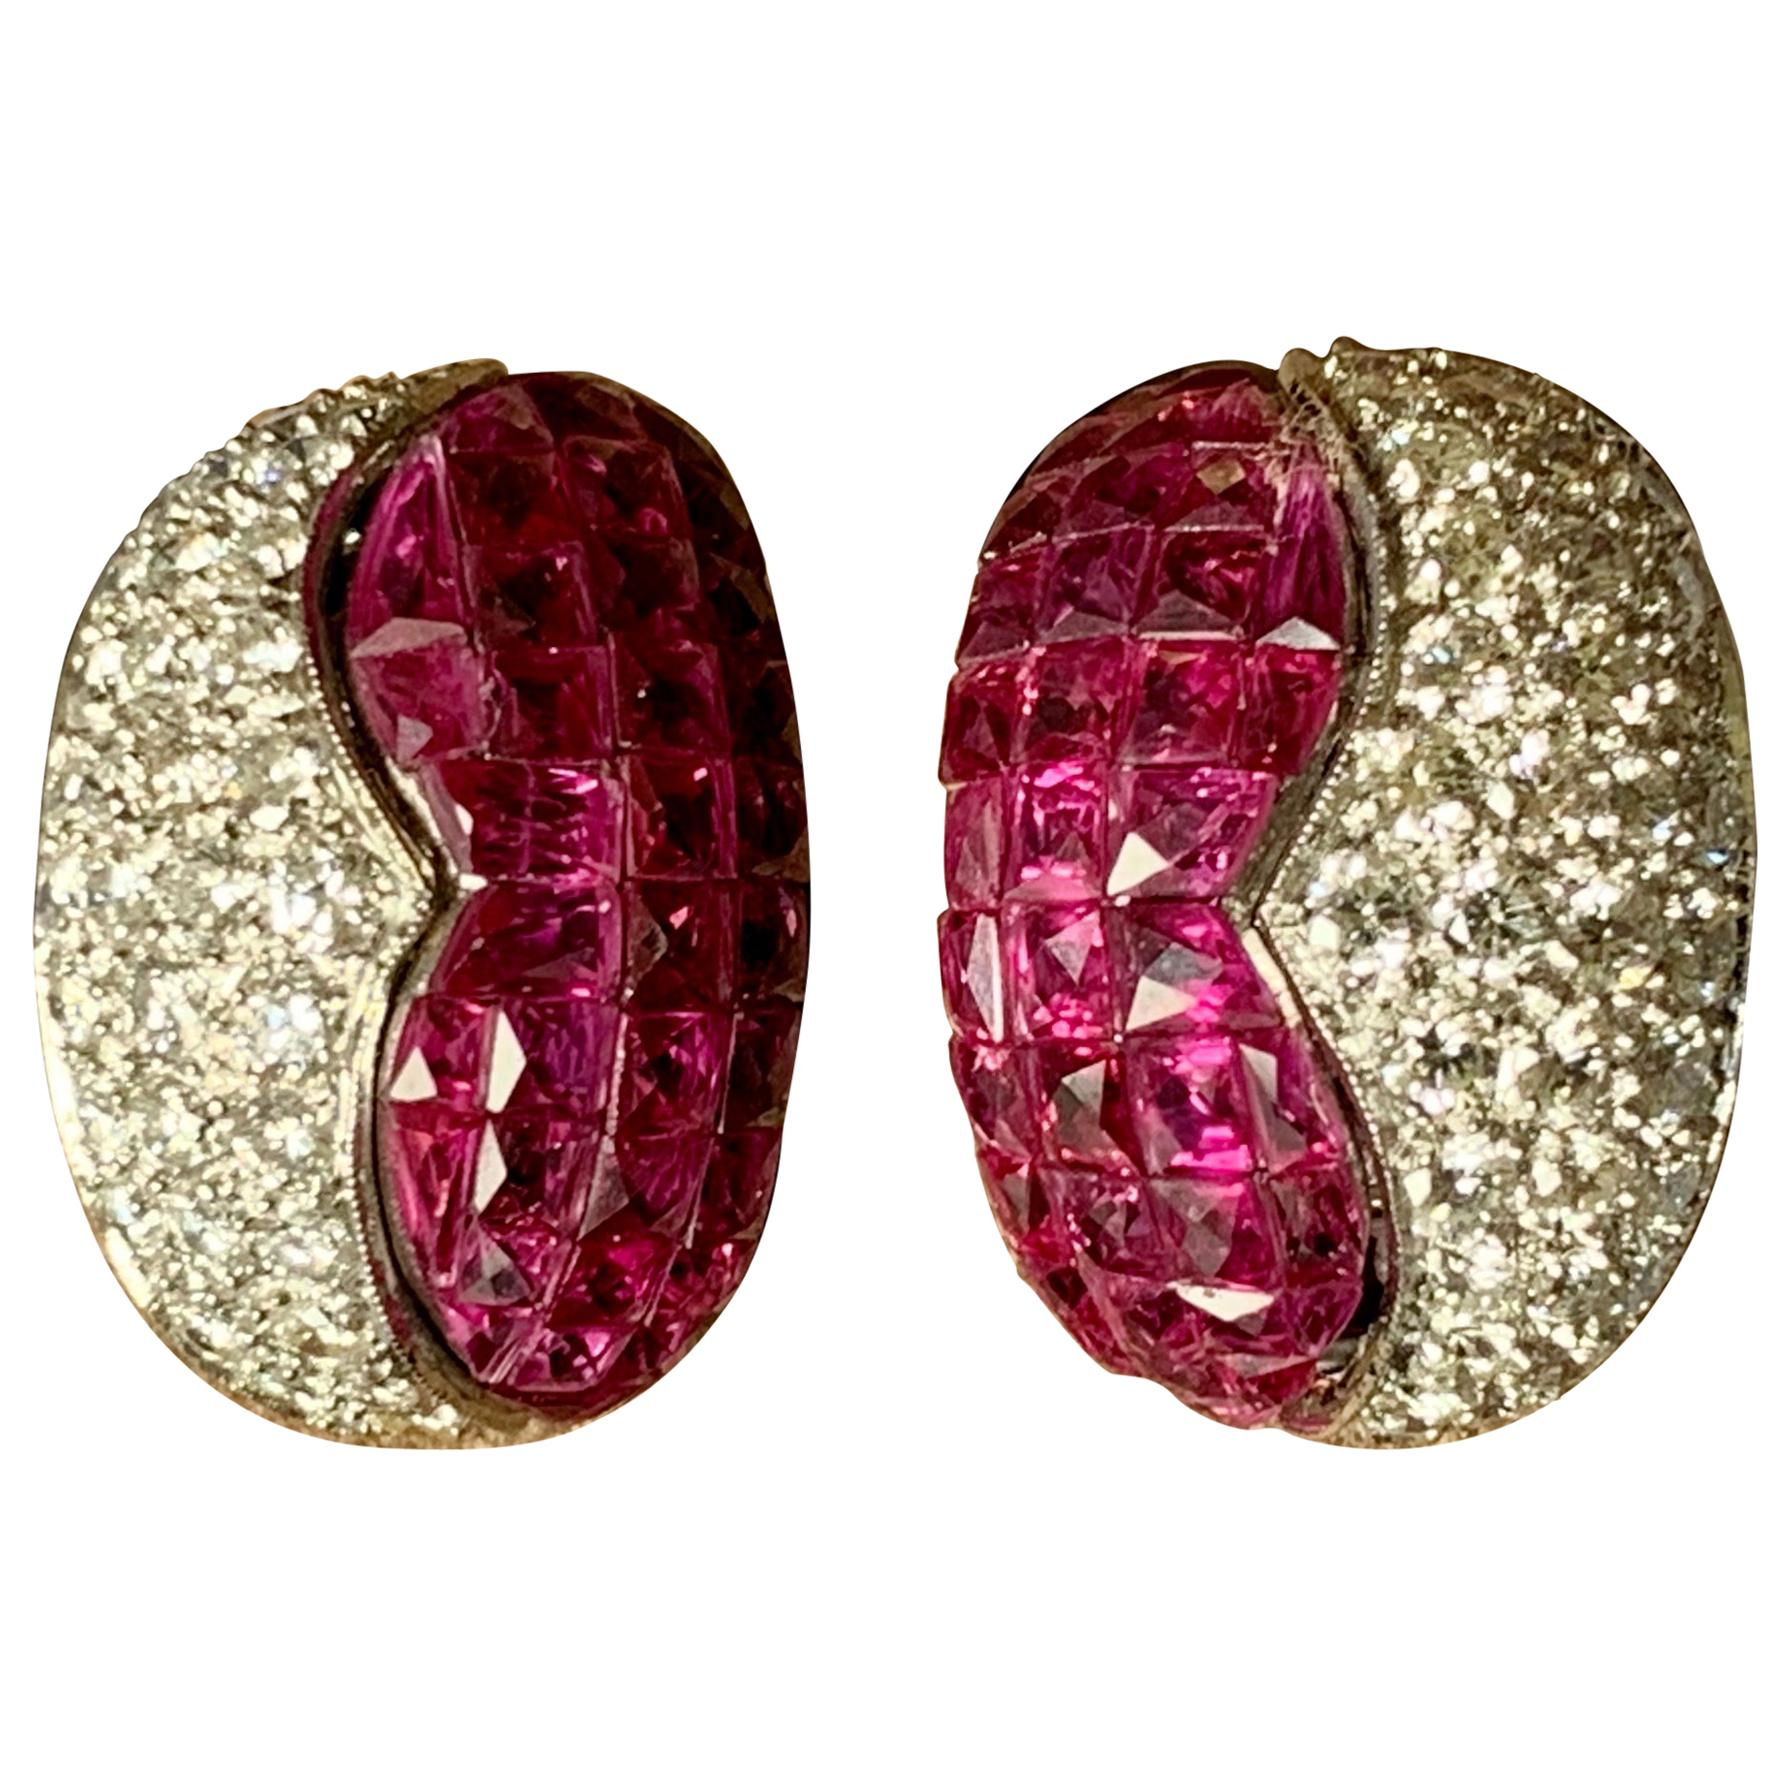 Charismatic and Eeegant 18 Karat Gold Invisible Set Ruby and Diamond Ear Clips